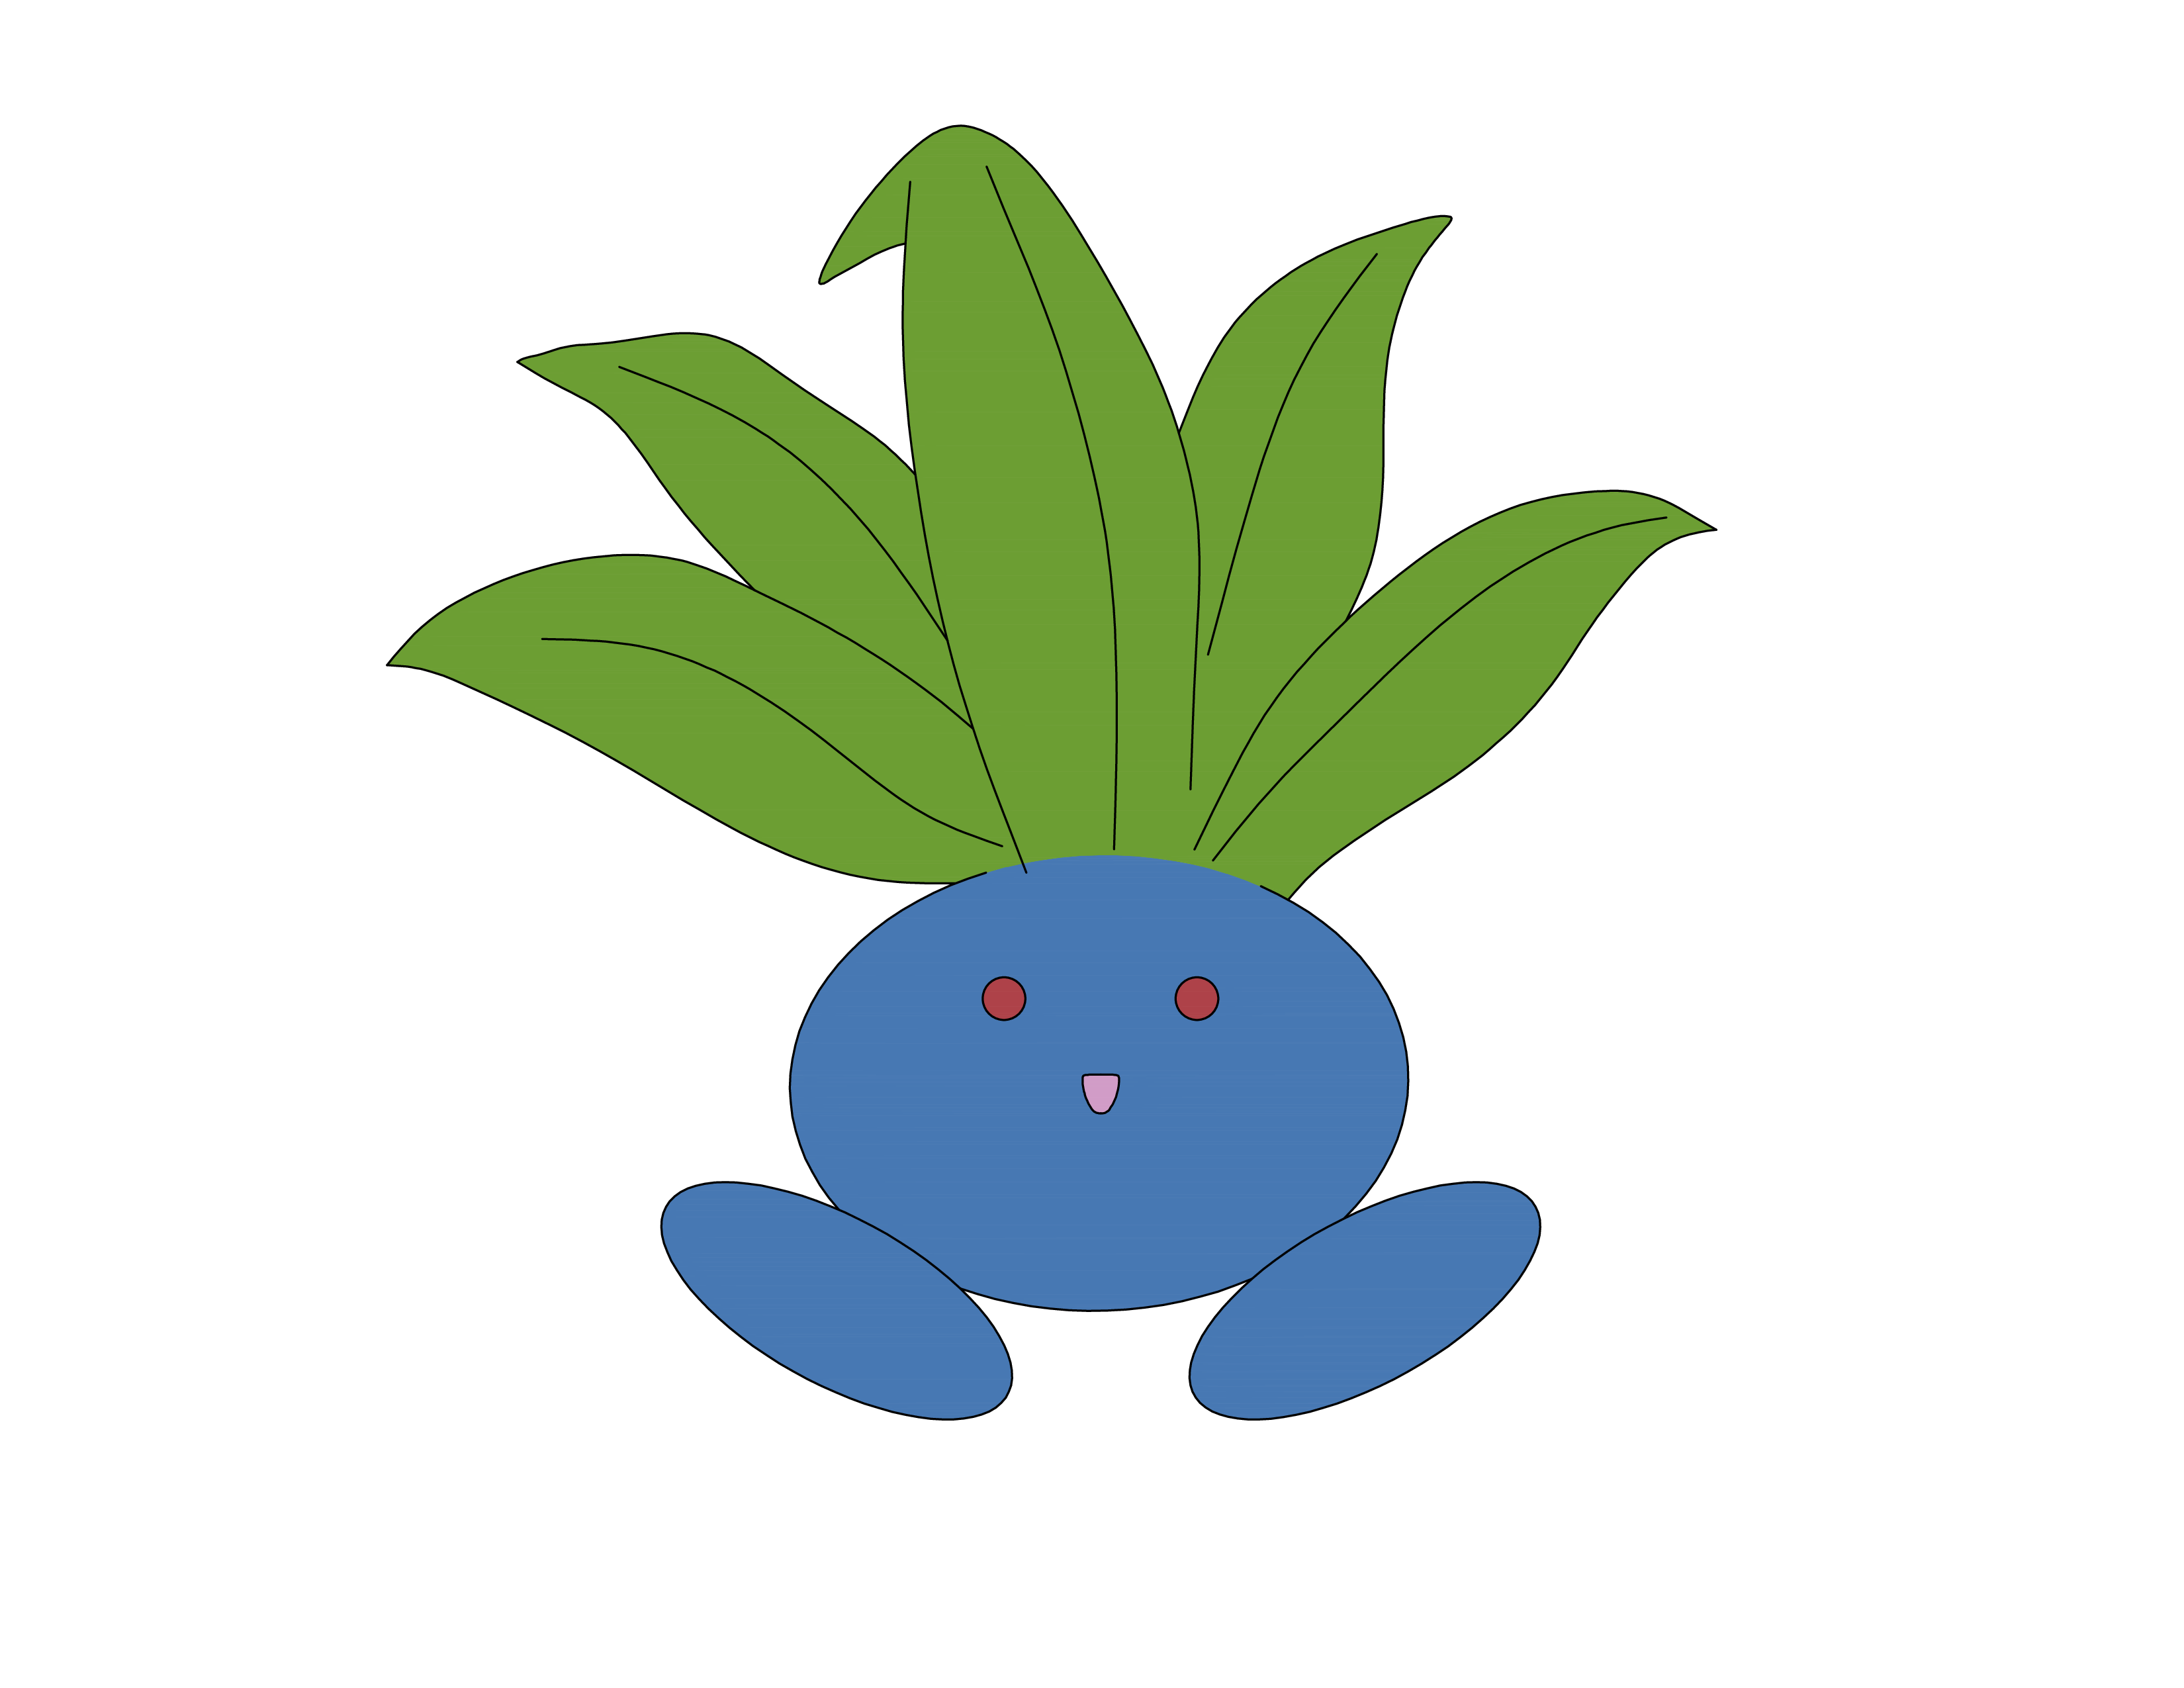 oddish transparent blueberry